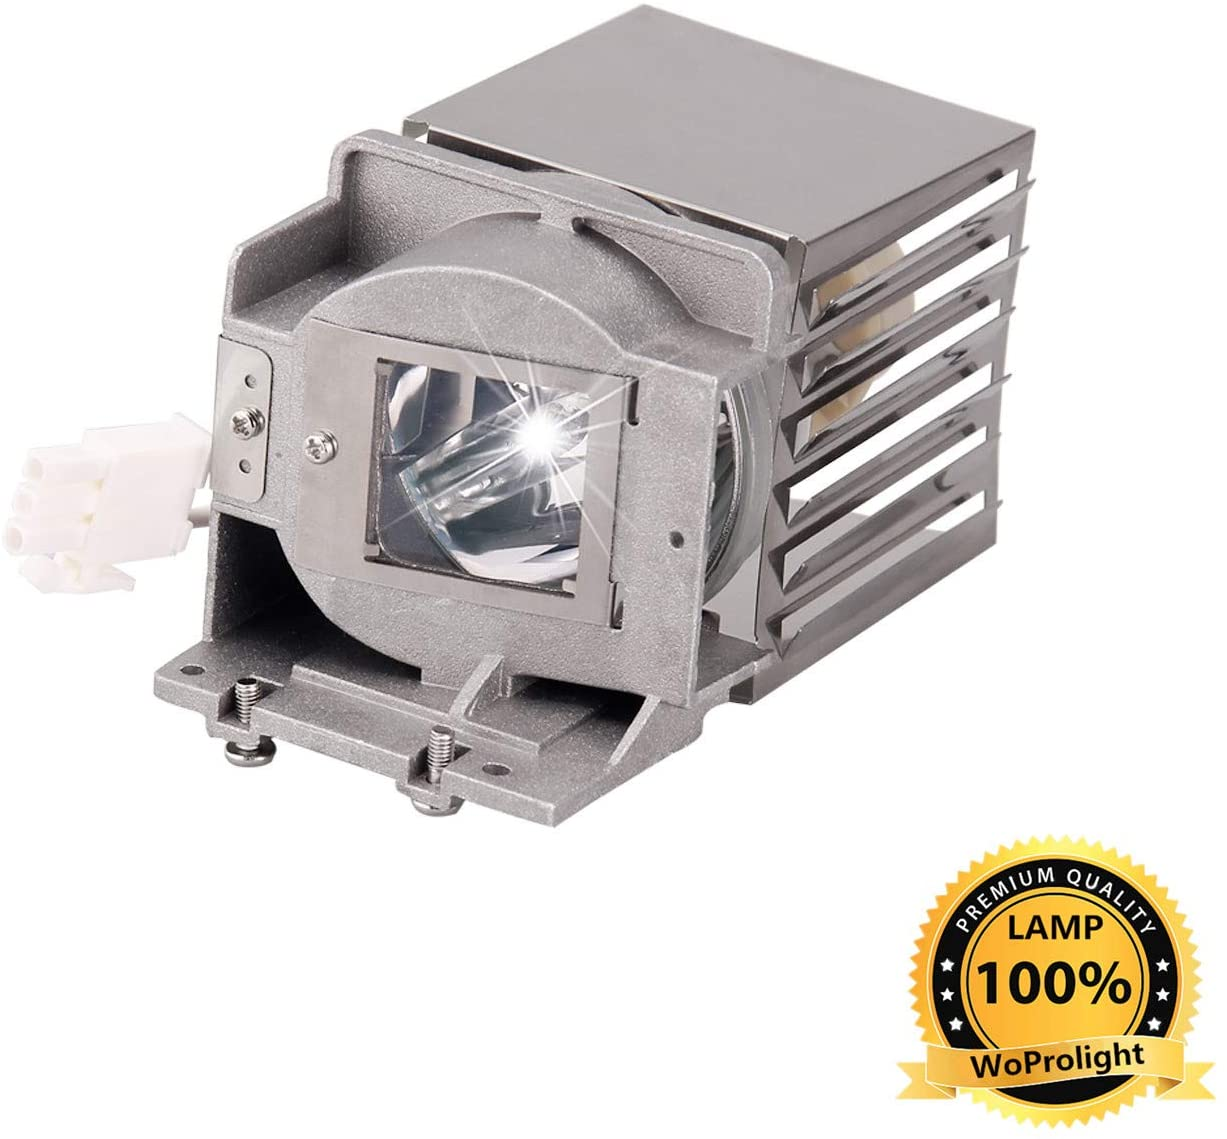 for Optoma BL-FP240A Genuine P-VIP Bulb Replacement Projector Lamp for OPTOMA TX631-3D TW631-3D Projector,OEM Inside P-VIP